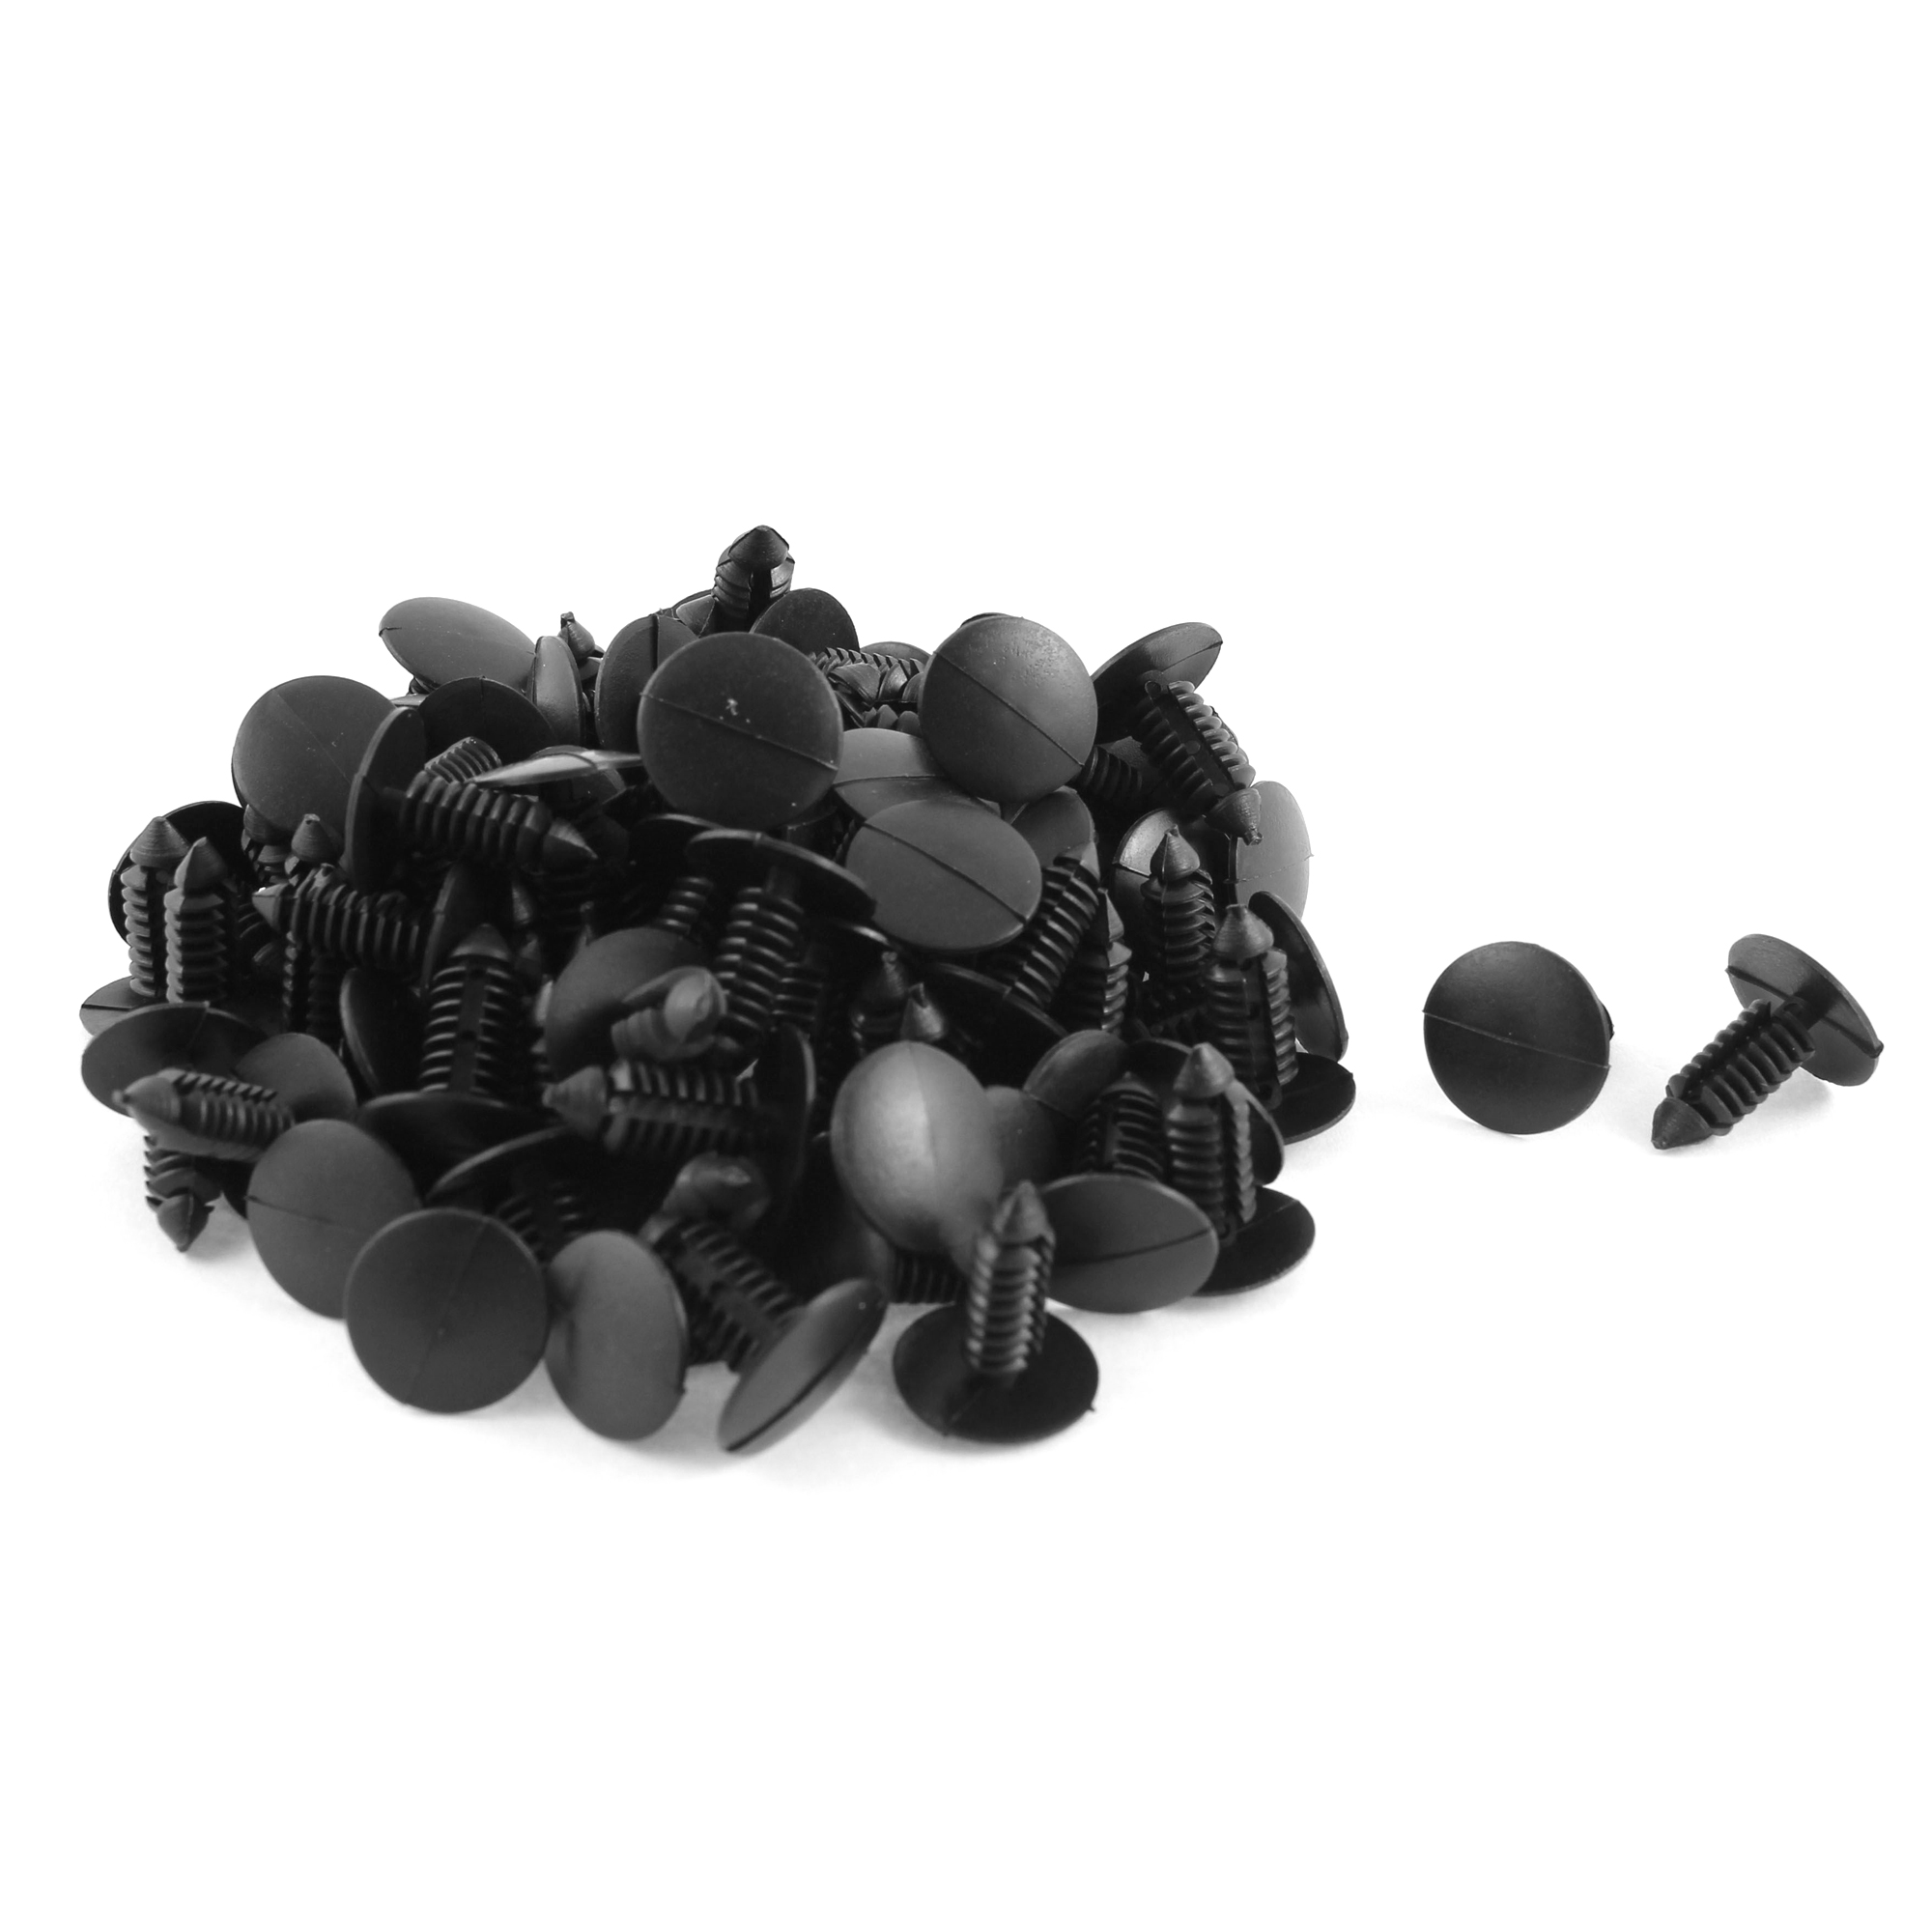 100 Pcs Black Plastic Rivet Trim Fastener Moulding Clips 7mm x 16mm x 17mm